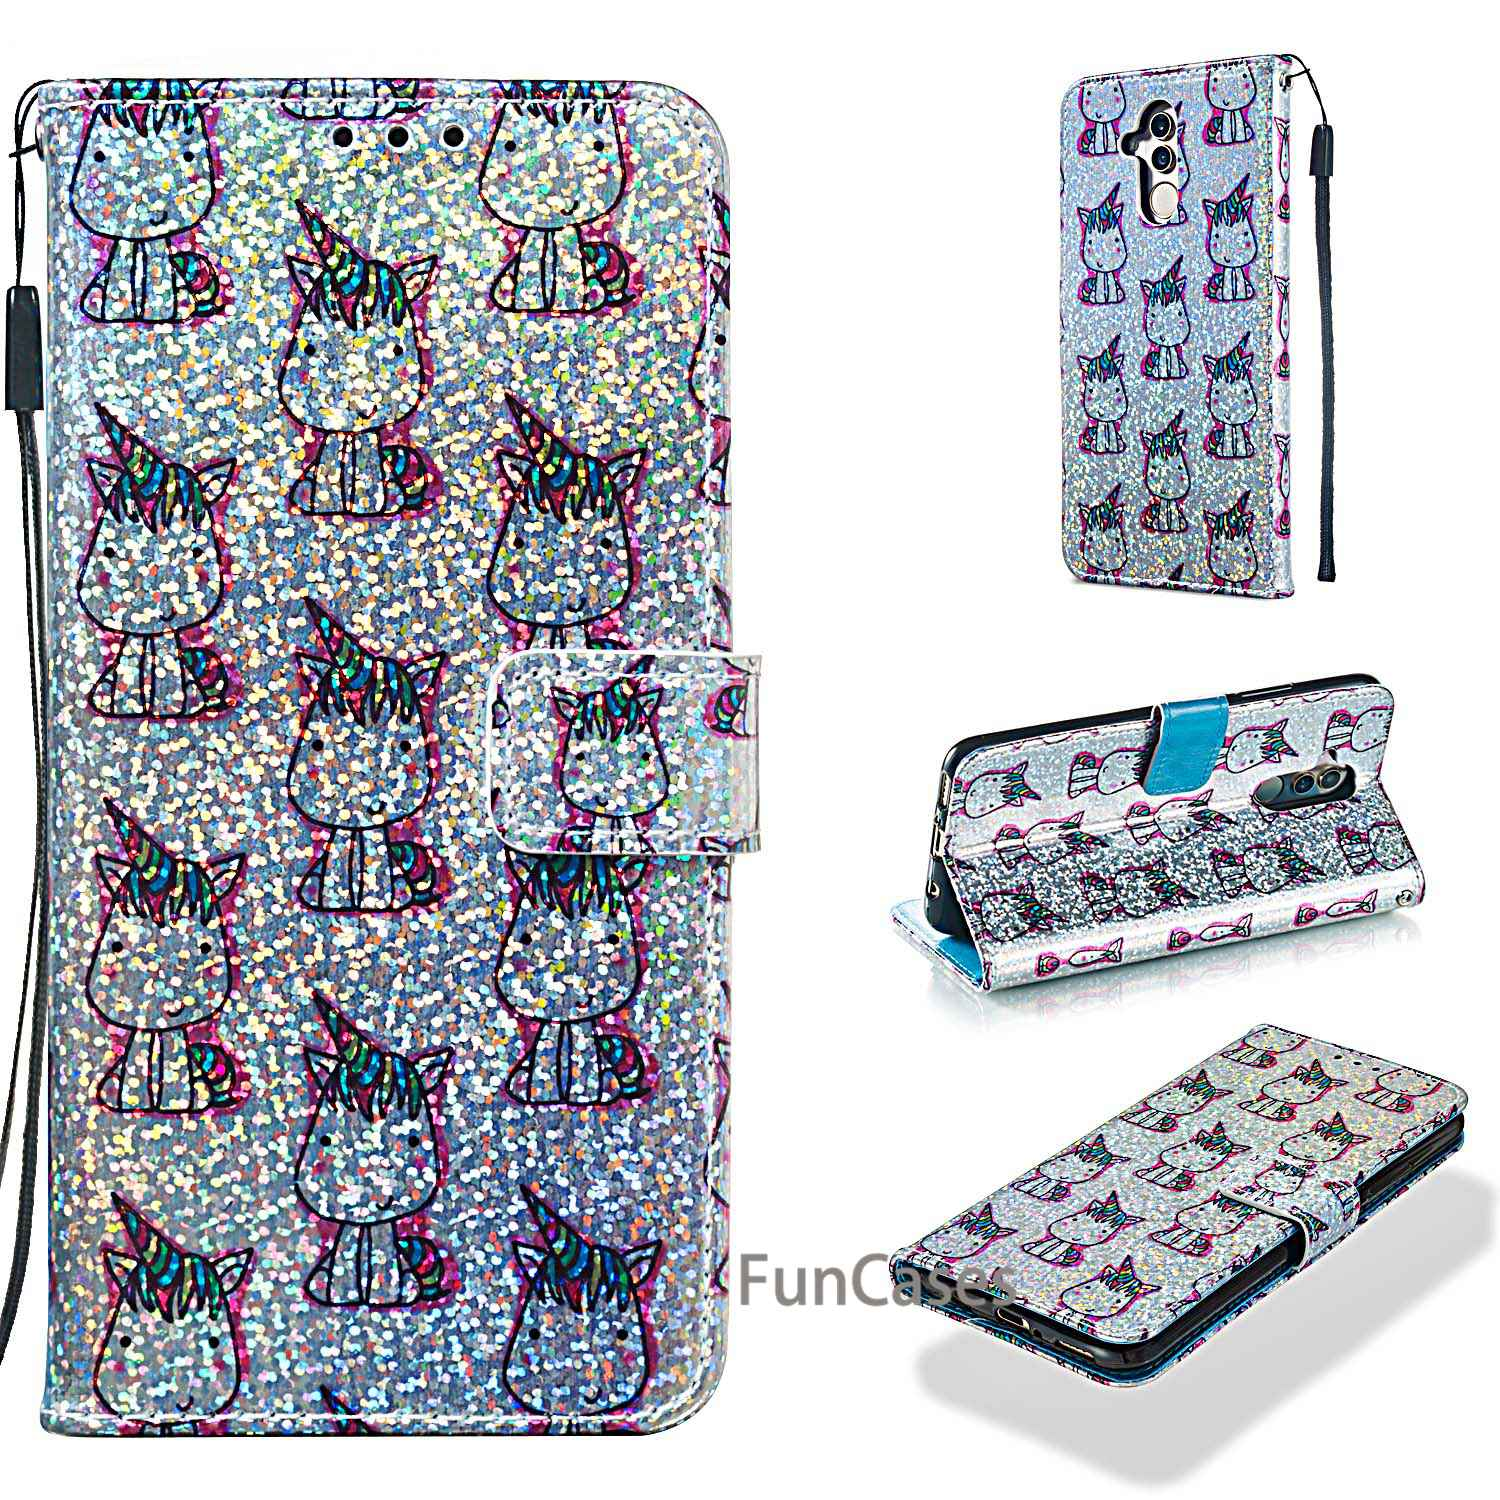 Bling Glitter Case For Huawei <font><b>Mate</b></font> <font><b>20</b></font> <font><b>Lite</b></font> Case PU Leather Wallet Phone Case Huawei <font><b>Mate</b></font> <font><b>20</b></font> <font><b>Lite</b></font> Luxury Flip Leather Cover <font><b>Capa</b></font> image